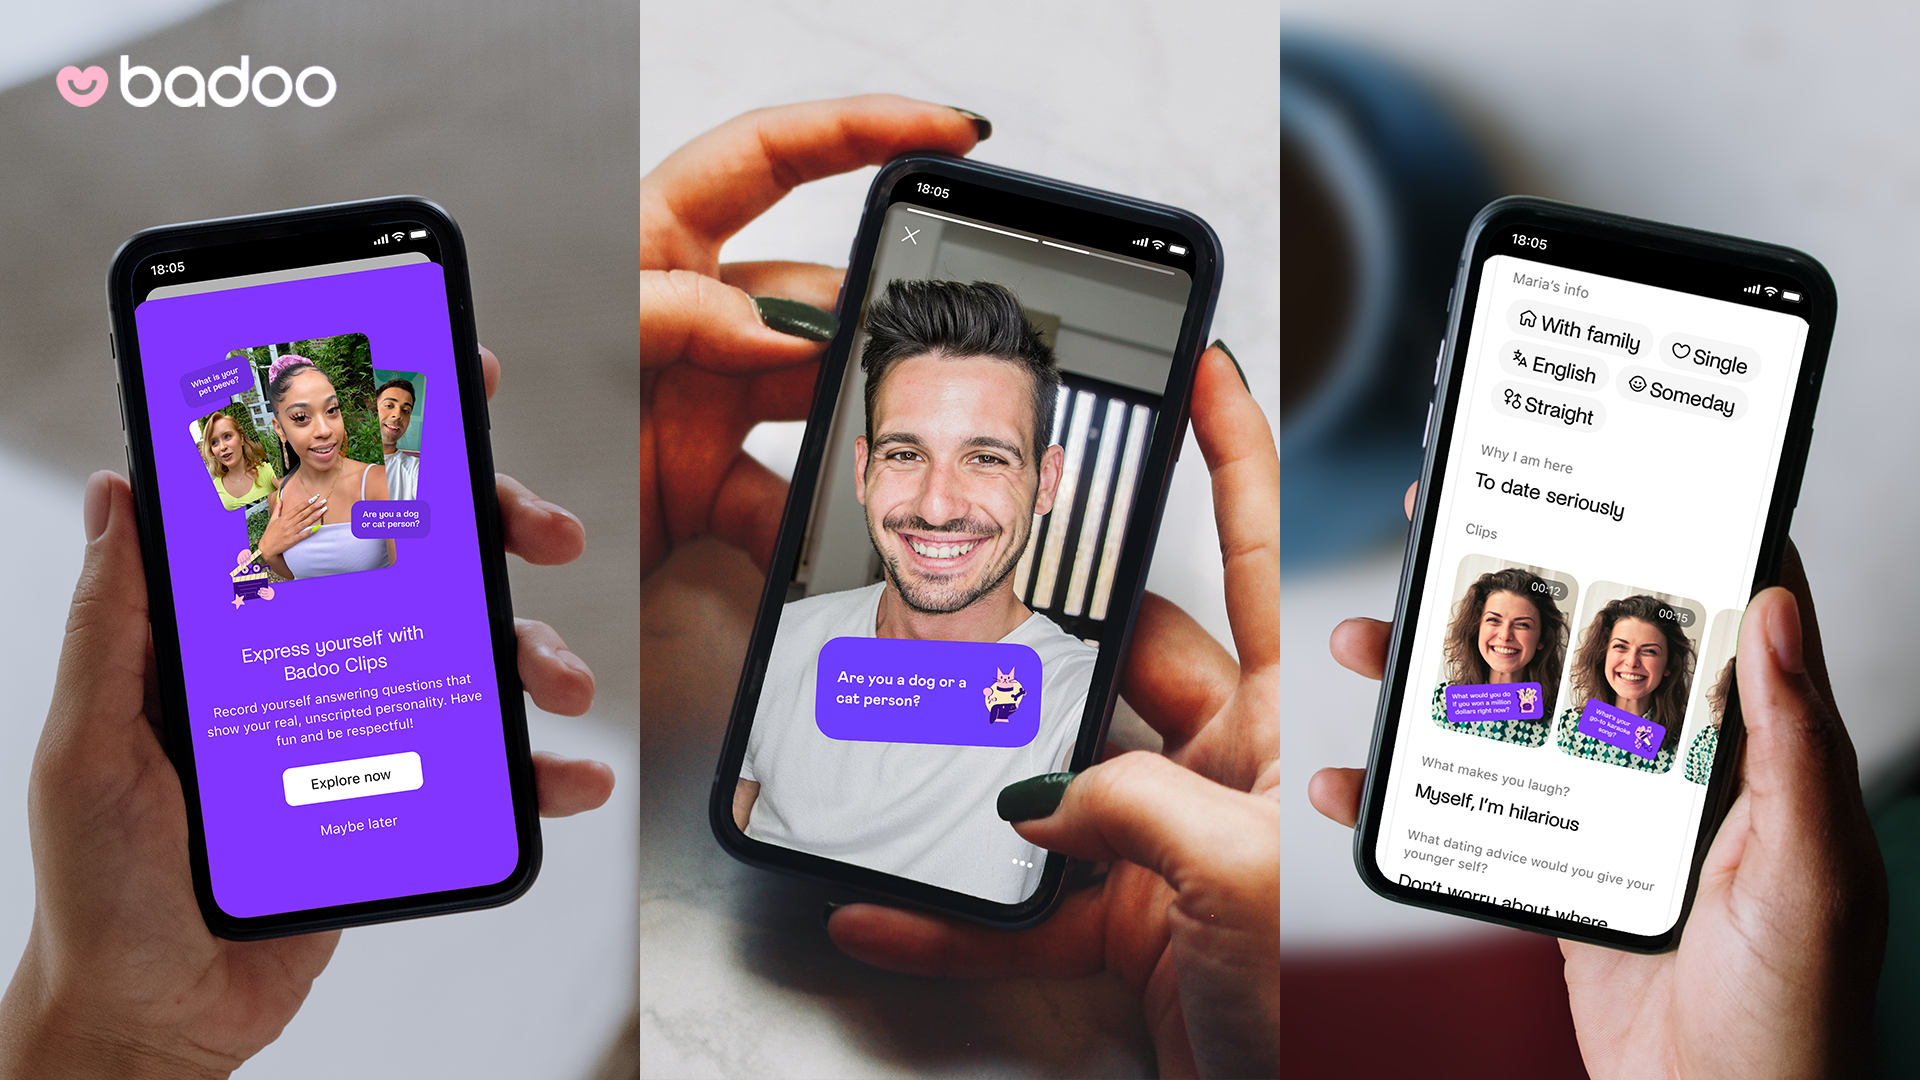 Badoo Enhances User Profiles With 15-Second Video Feature